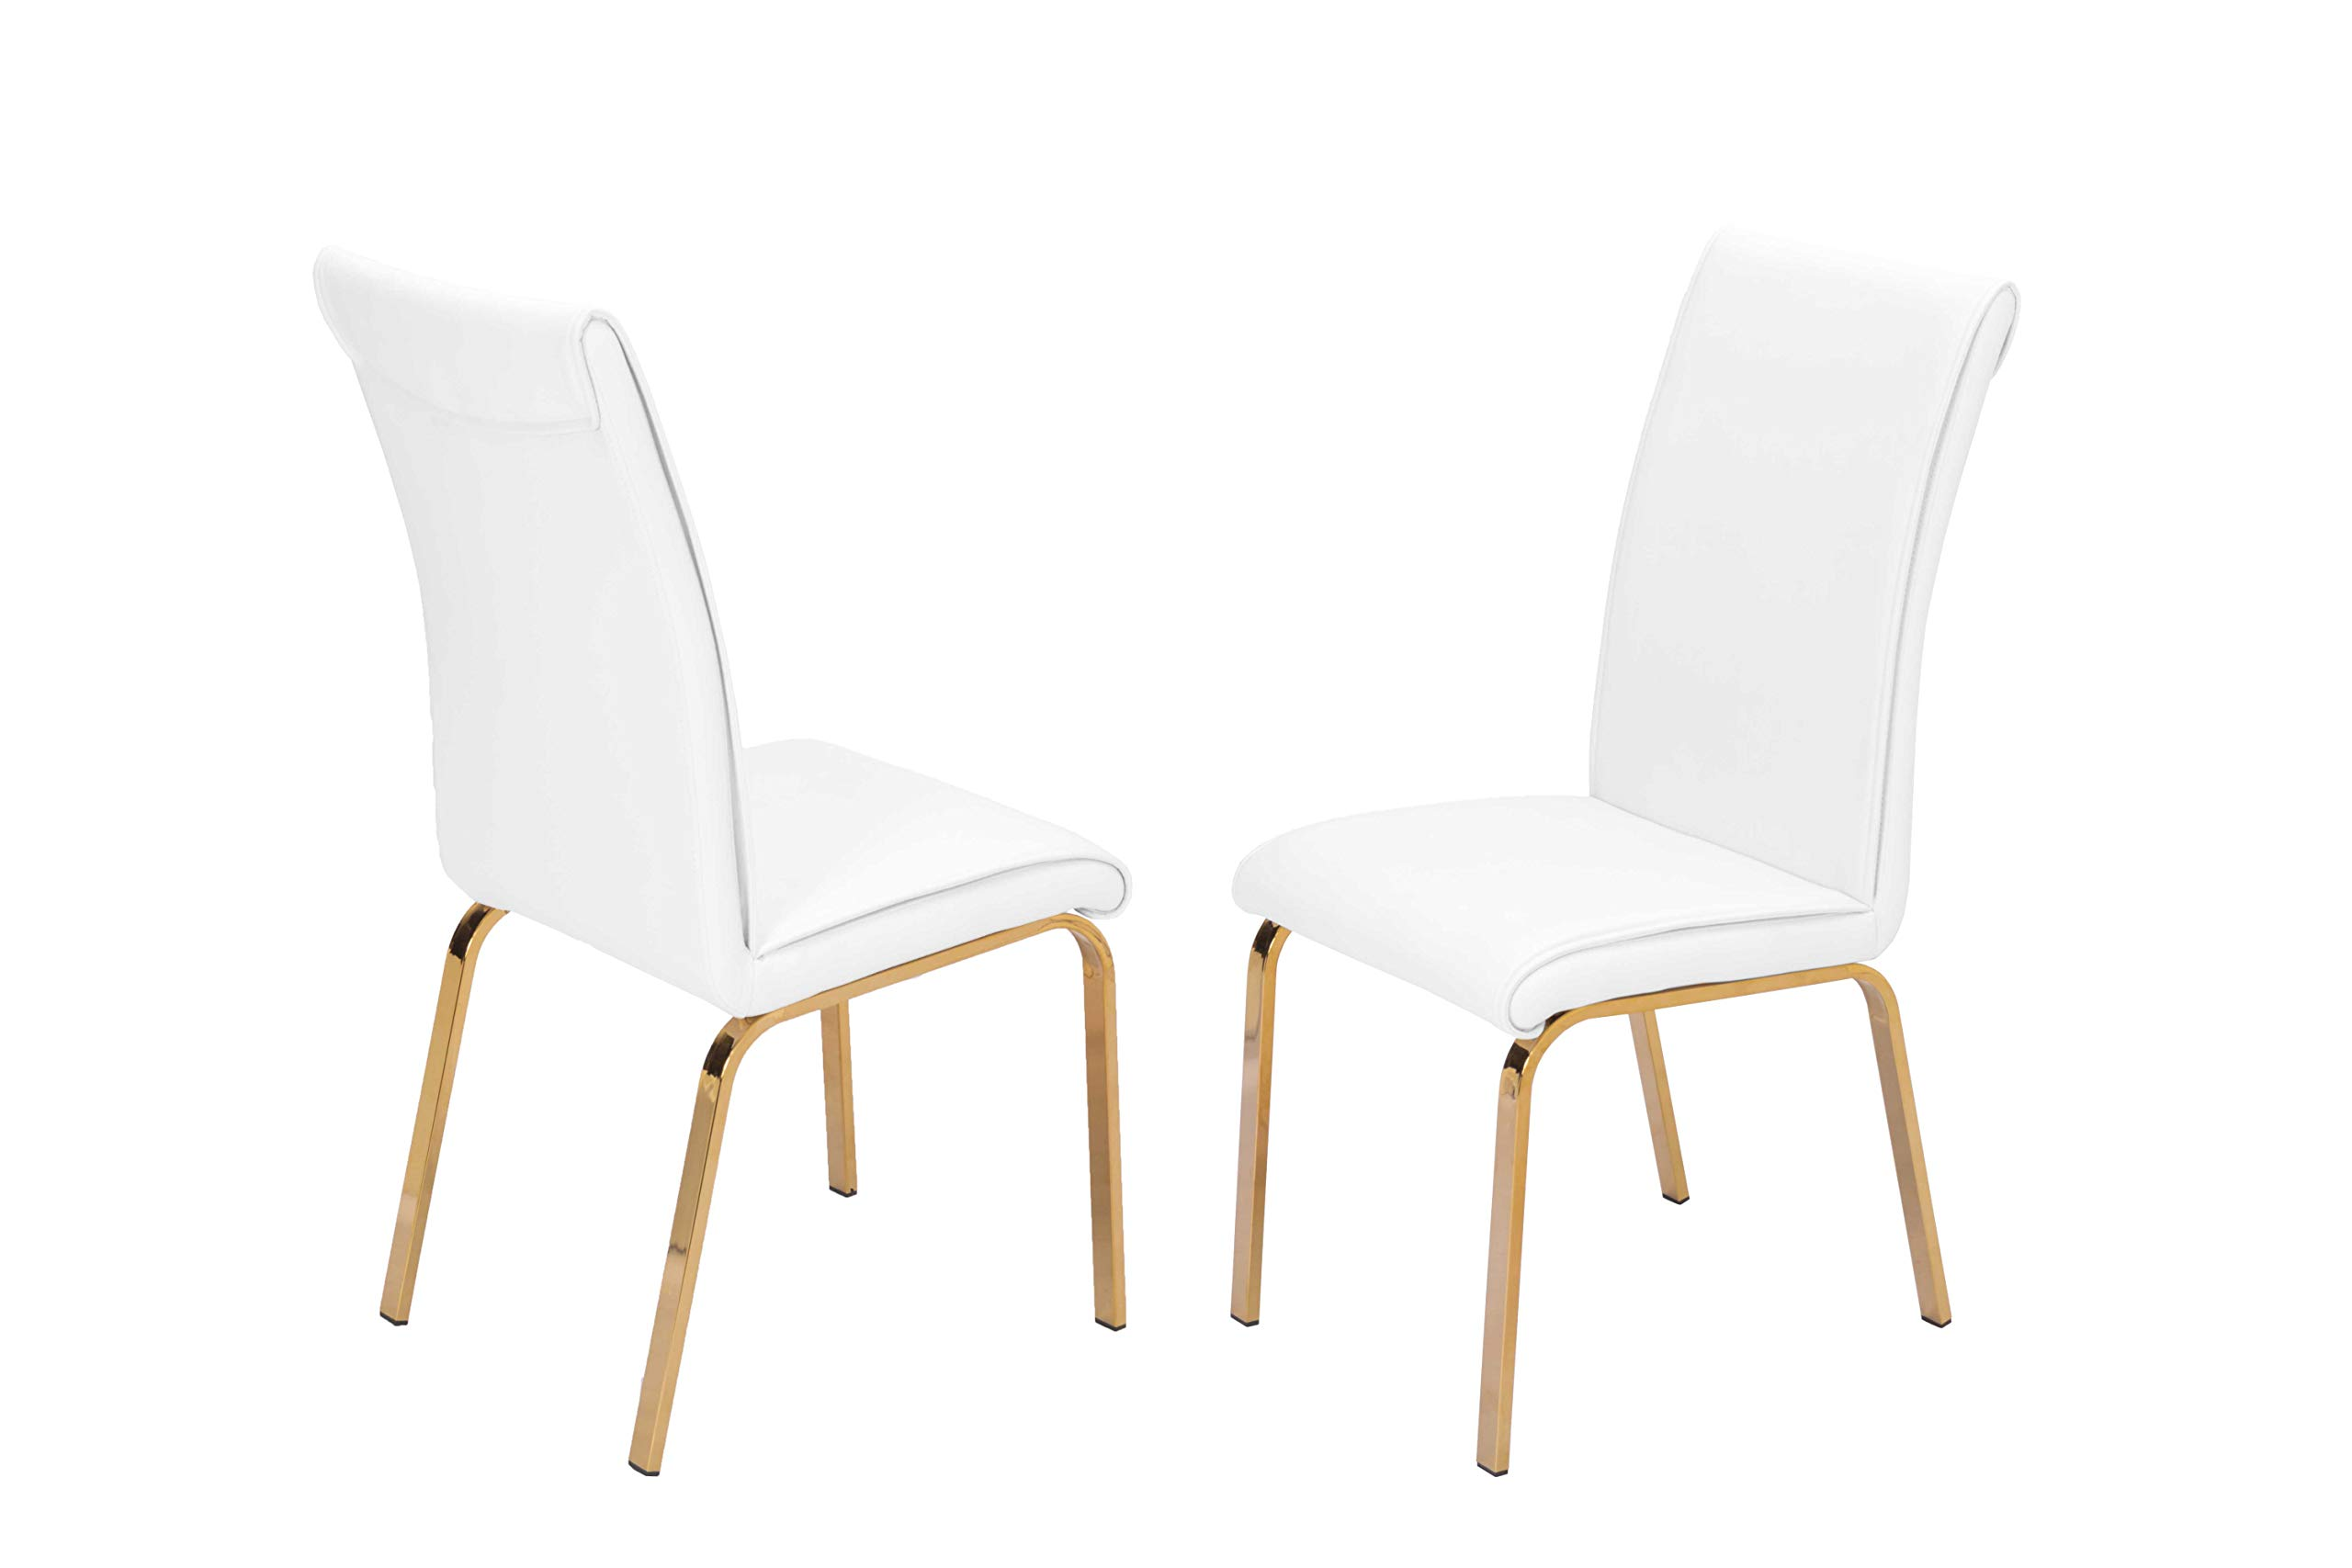 Best Quality Furniture Dining Chair Only (Set of 2), White, Gold by Best Quality